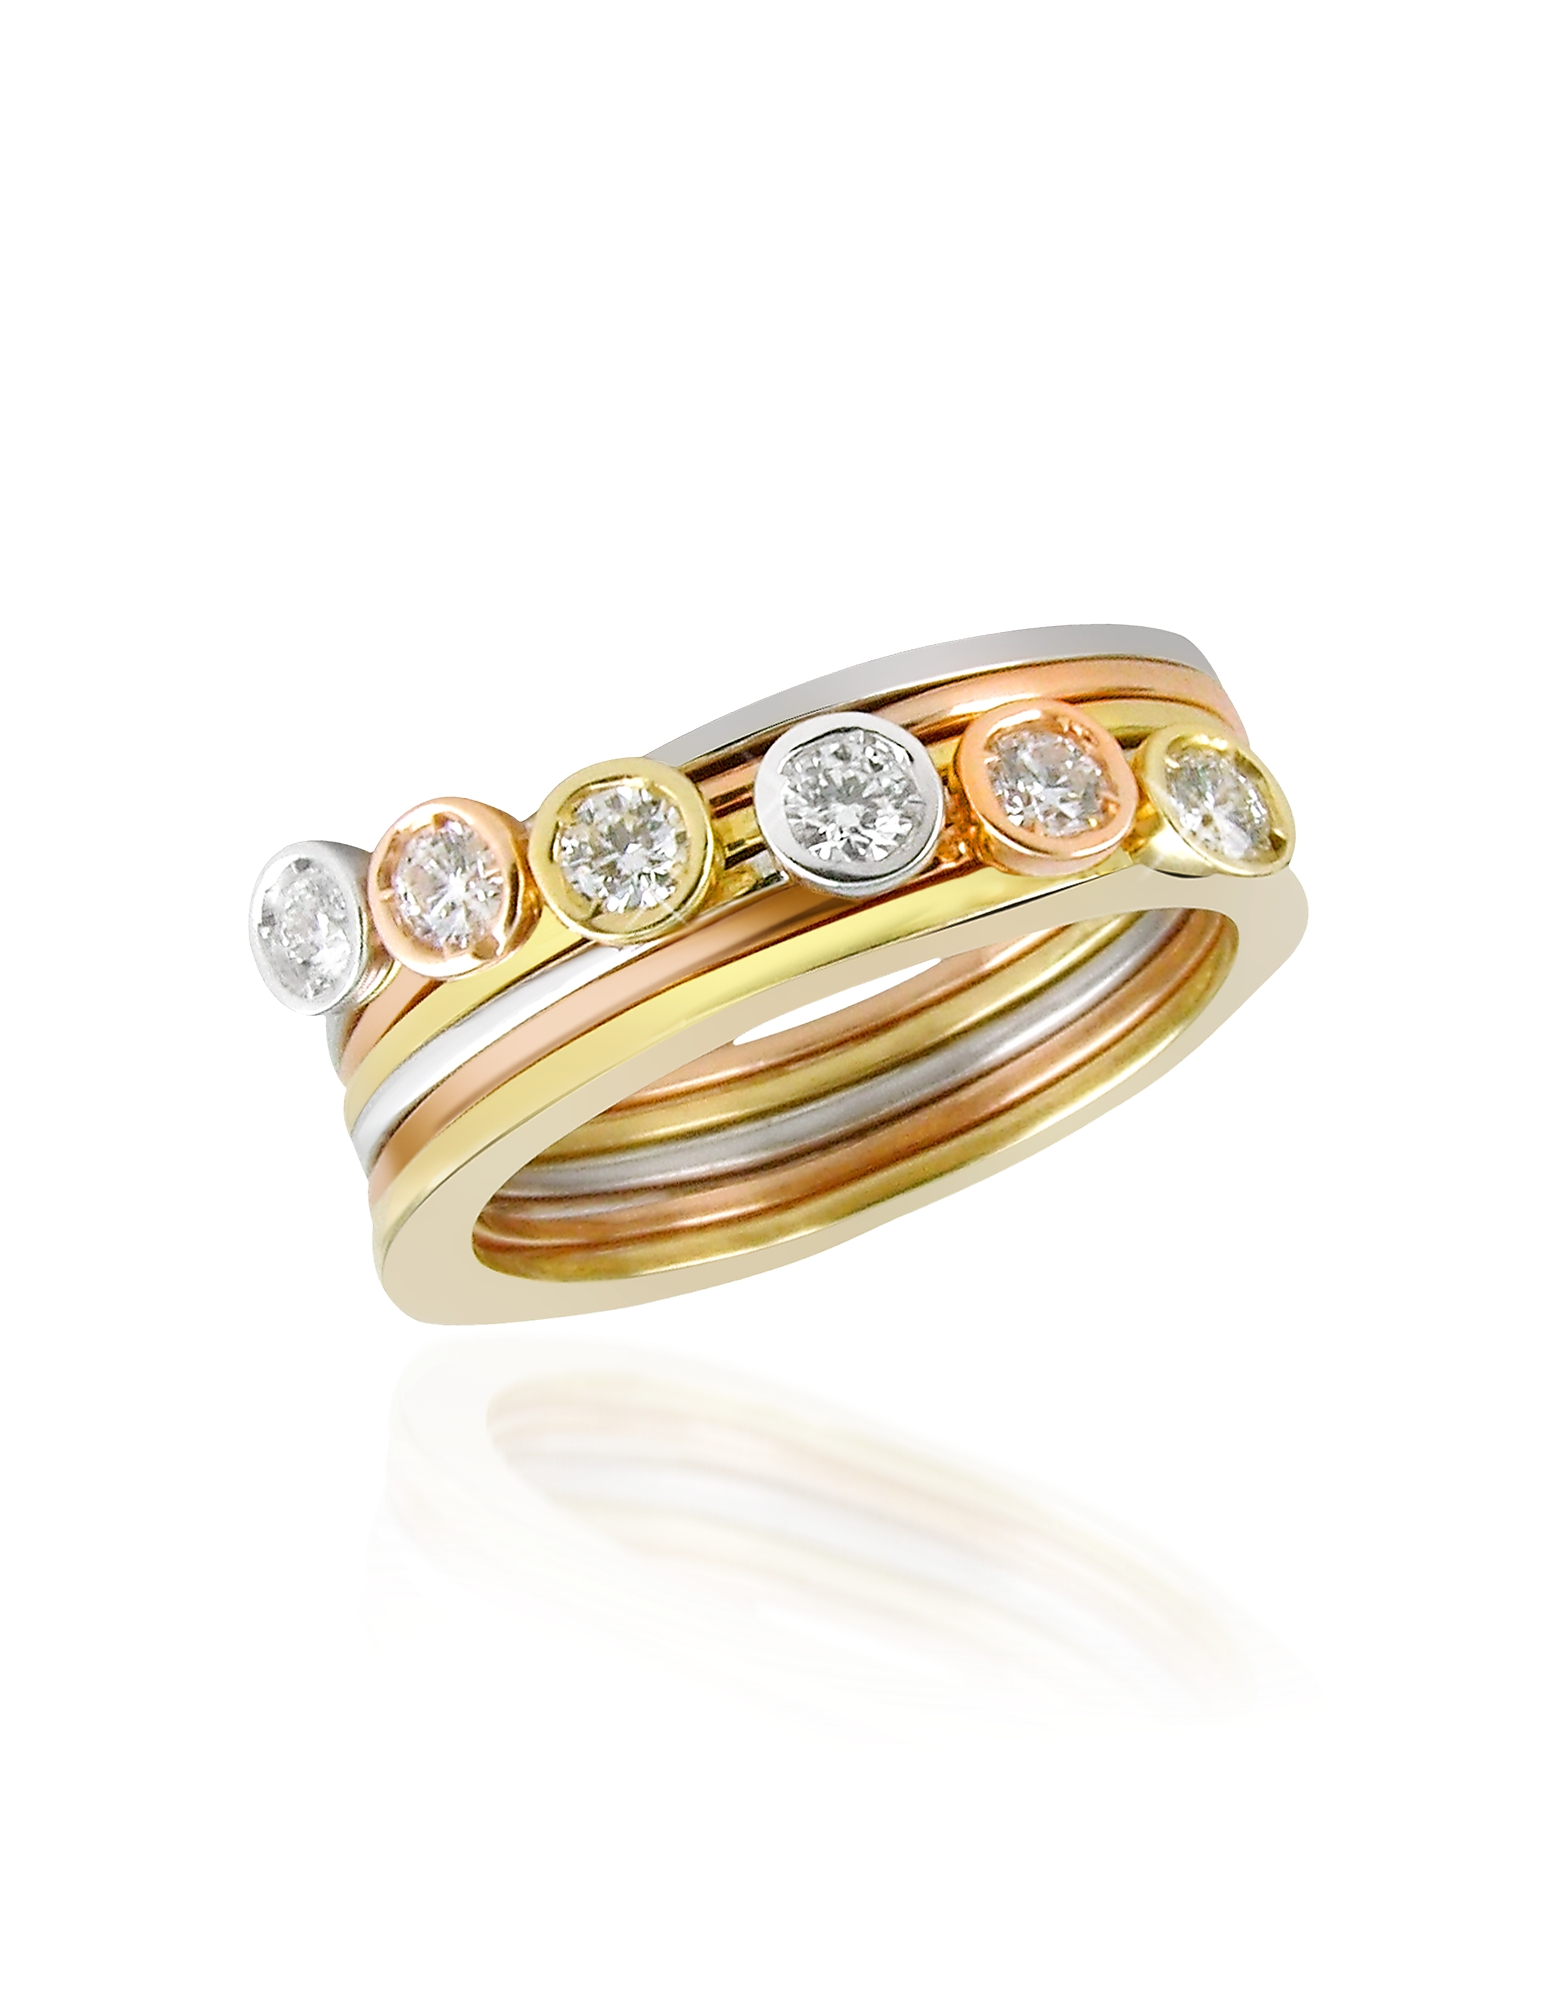 Torrini Rings, Bezel-set Diamond Three-tone 18K Gold Stackable Ring - Set of Six